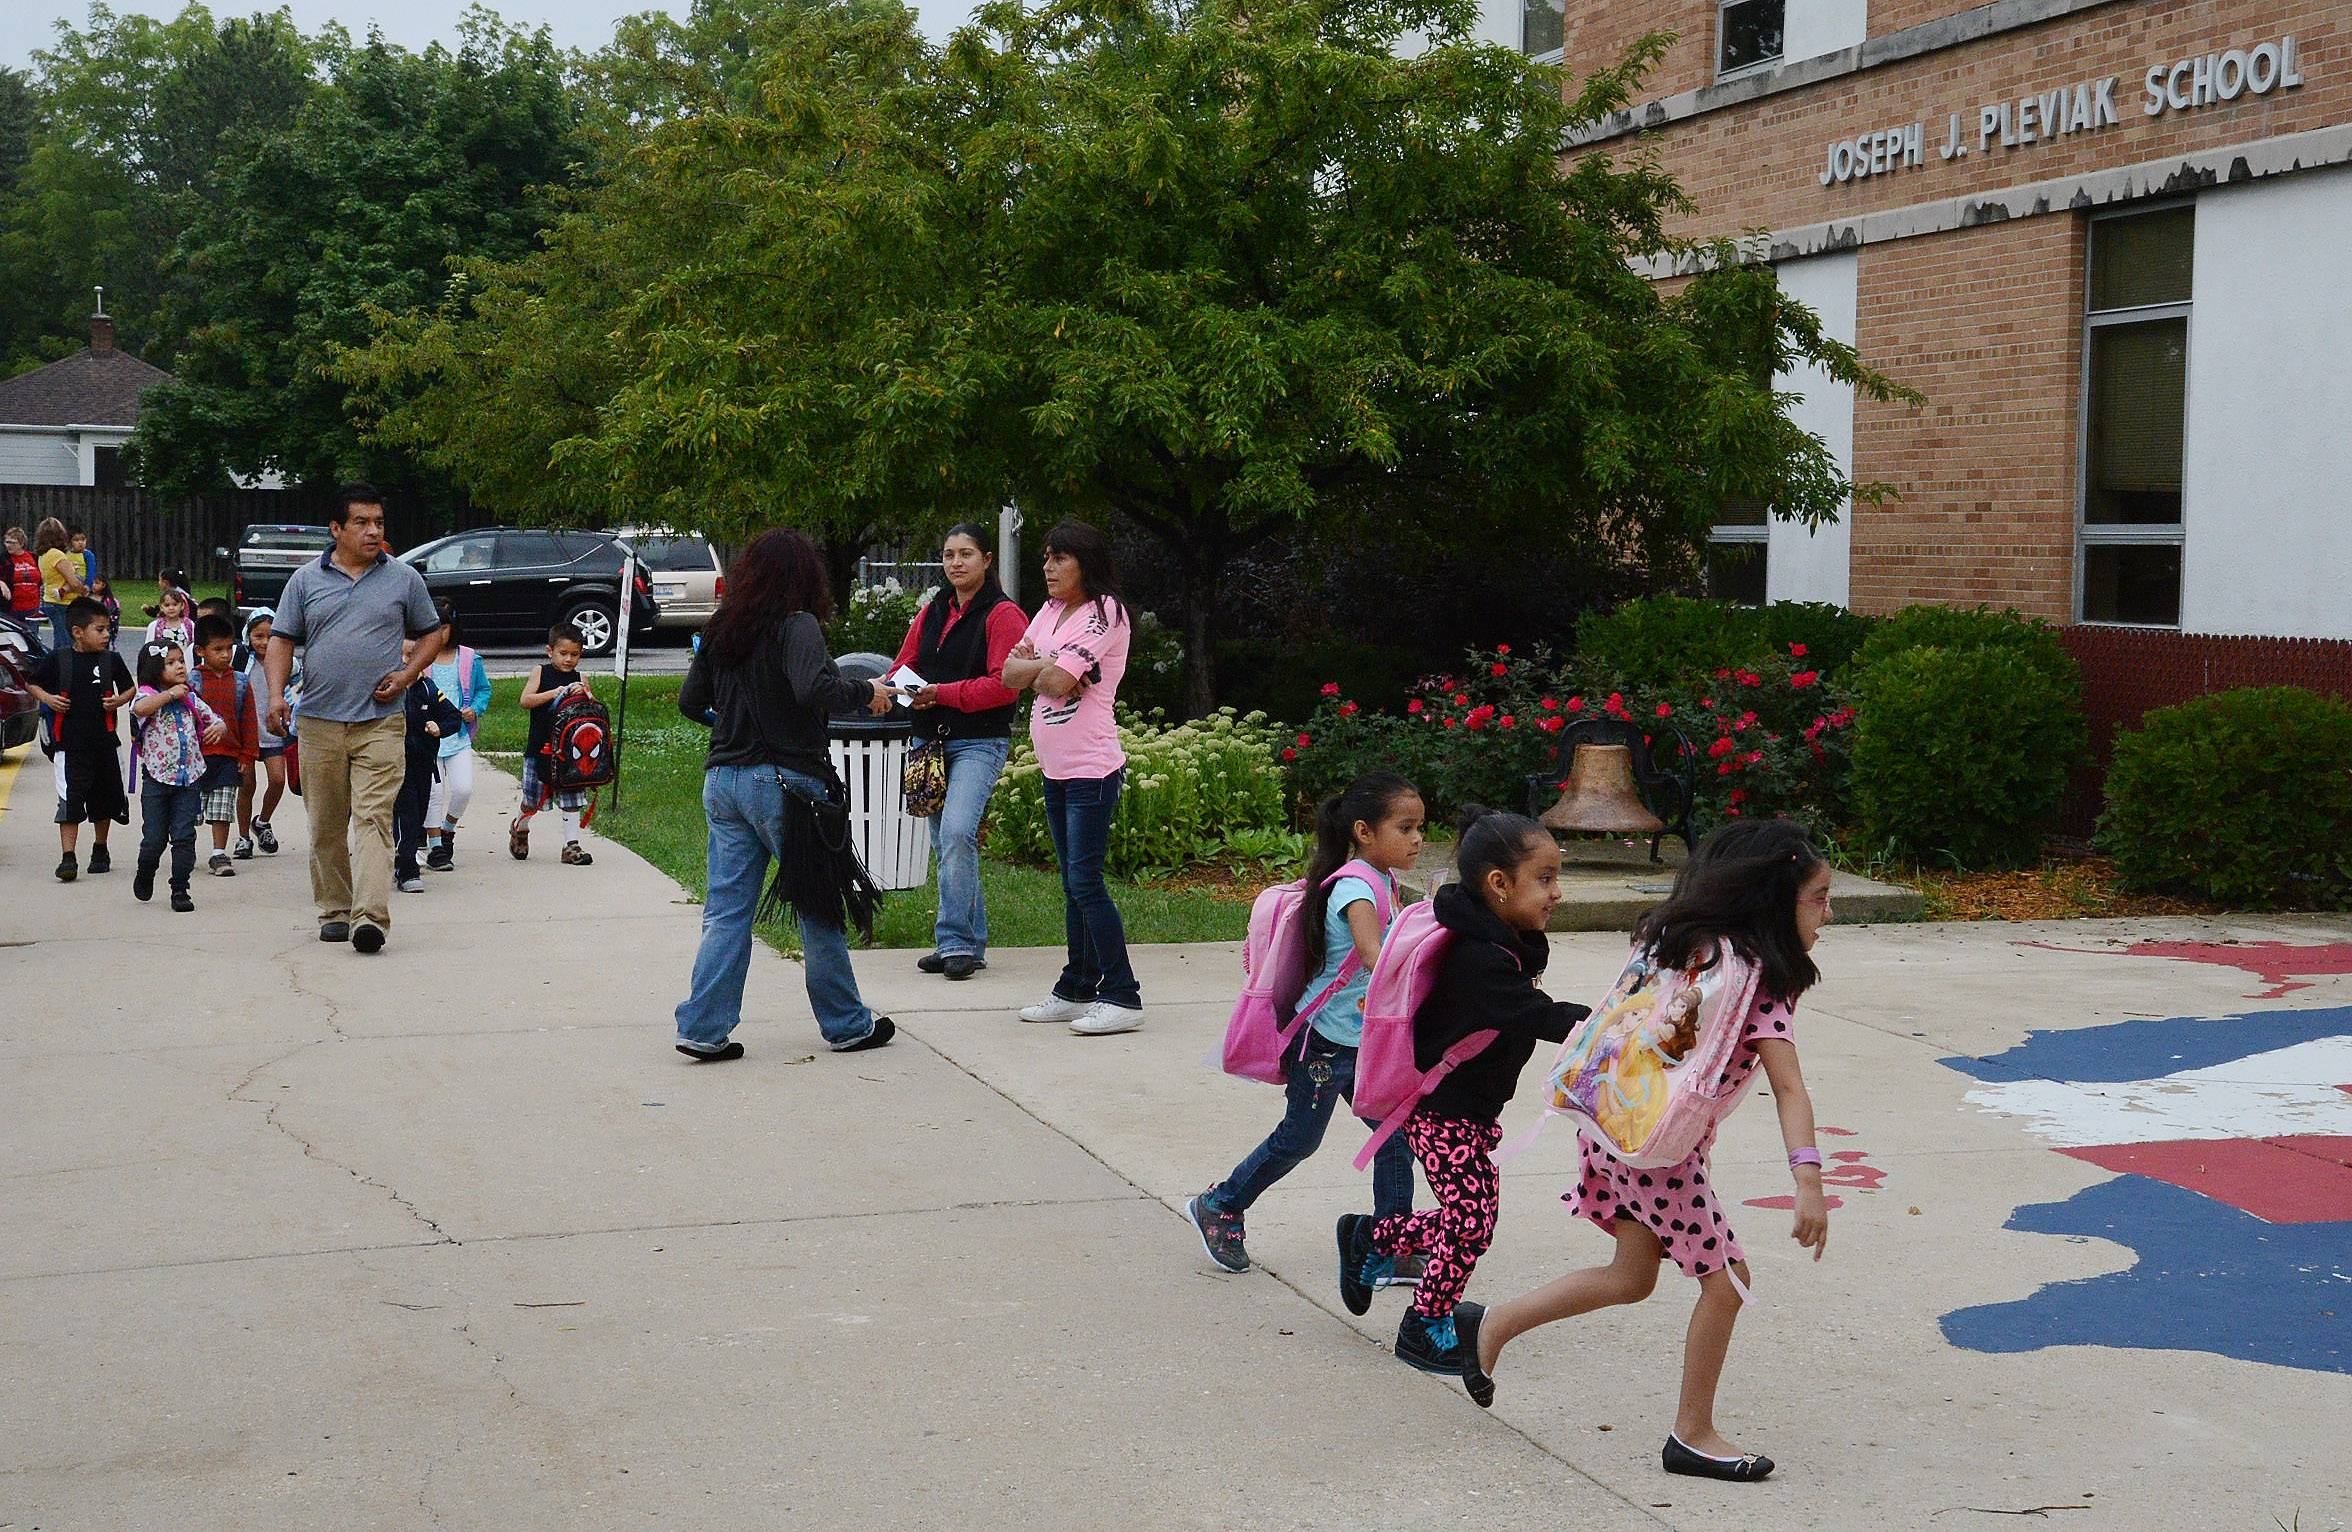 Unwanted by Lake Villa Elementary District 41, Pleviak Elementary School didn't miss a beat Tuesday. It opened for the first day of classes for Round Lake Area Unit District 116's kindergarten program.